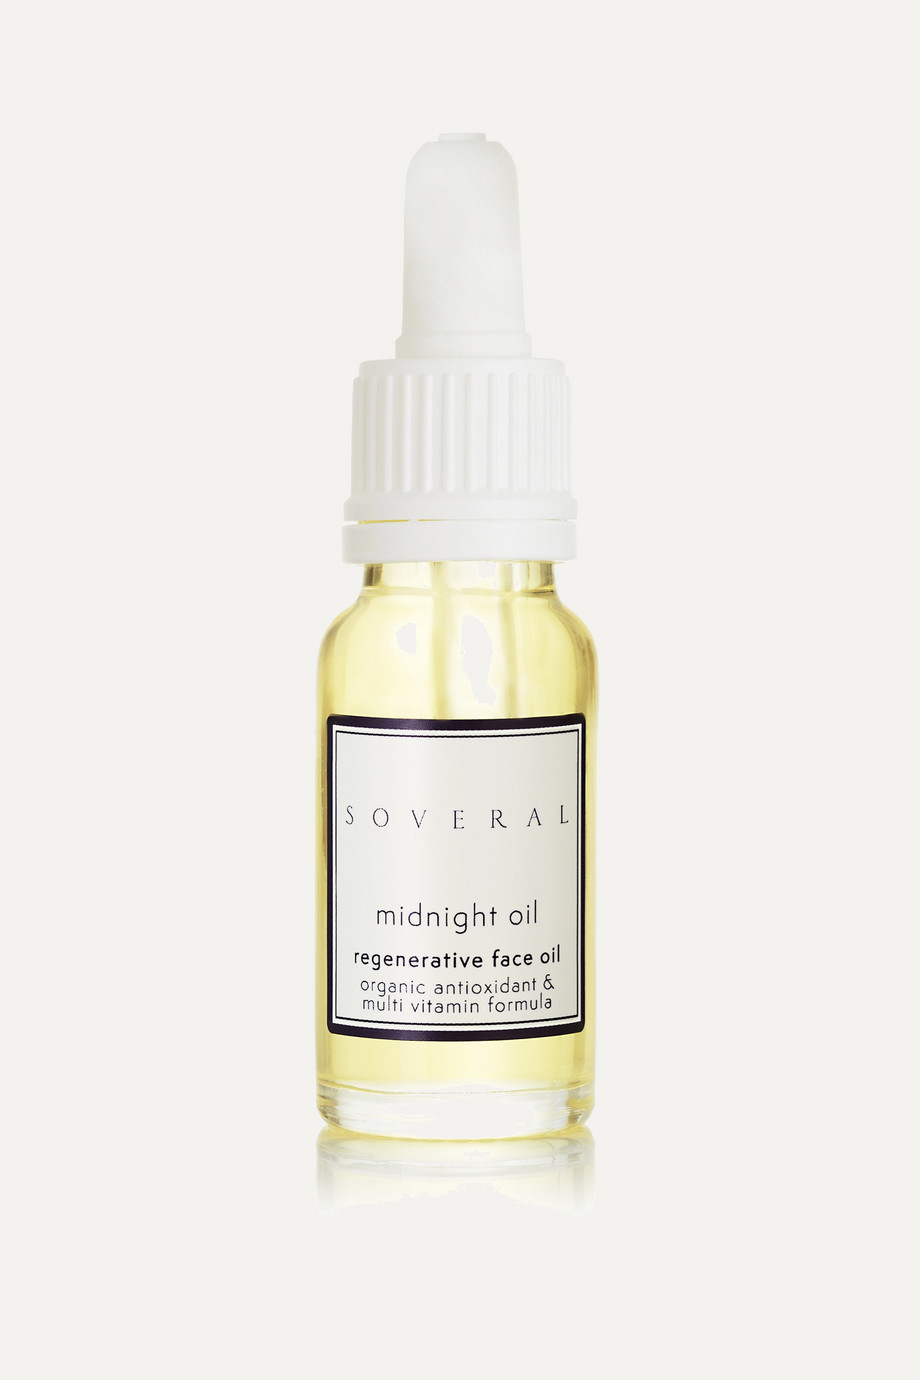 SOVERAL Midnight Oil, 15ml